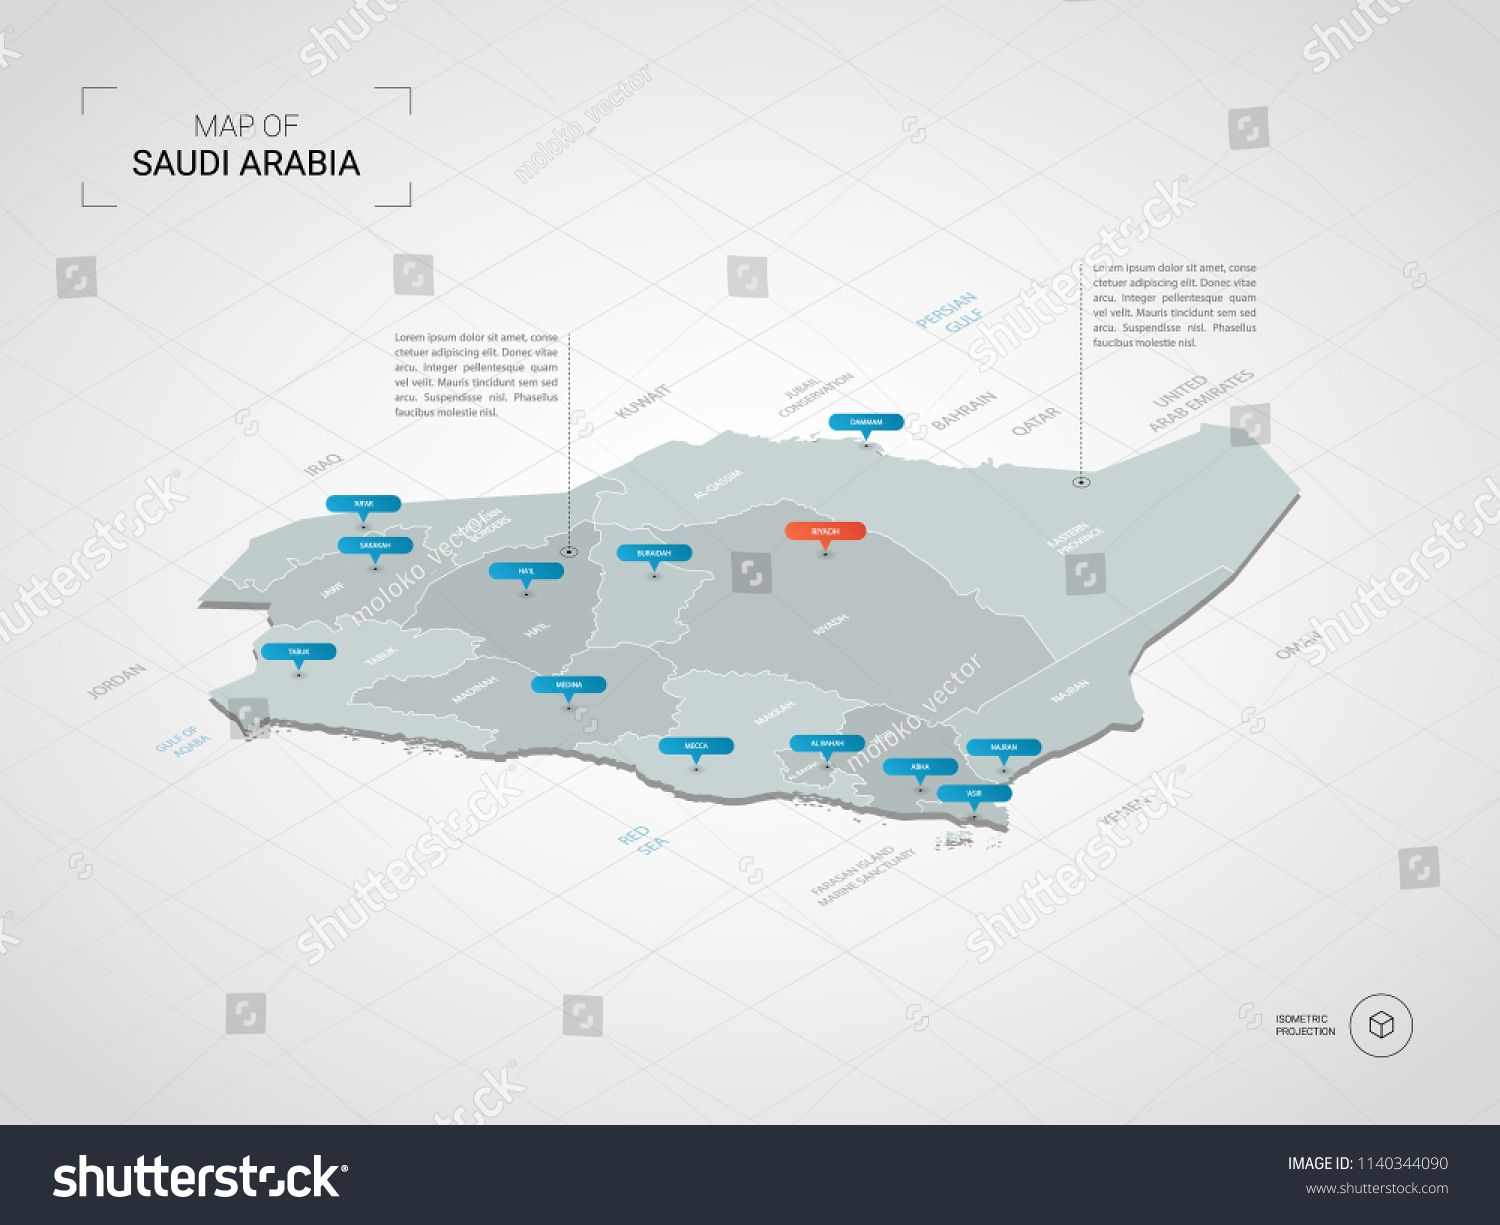 Isometric 3d Saudi Arabia N Map Stylized Vector Map Illustration With Cities Borders Capital Riyadh Administrative Division Map Illustrated Map Map Vector